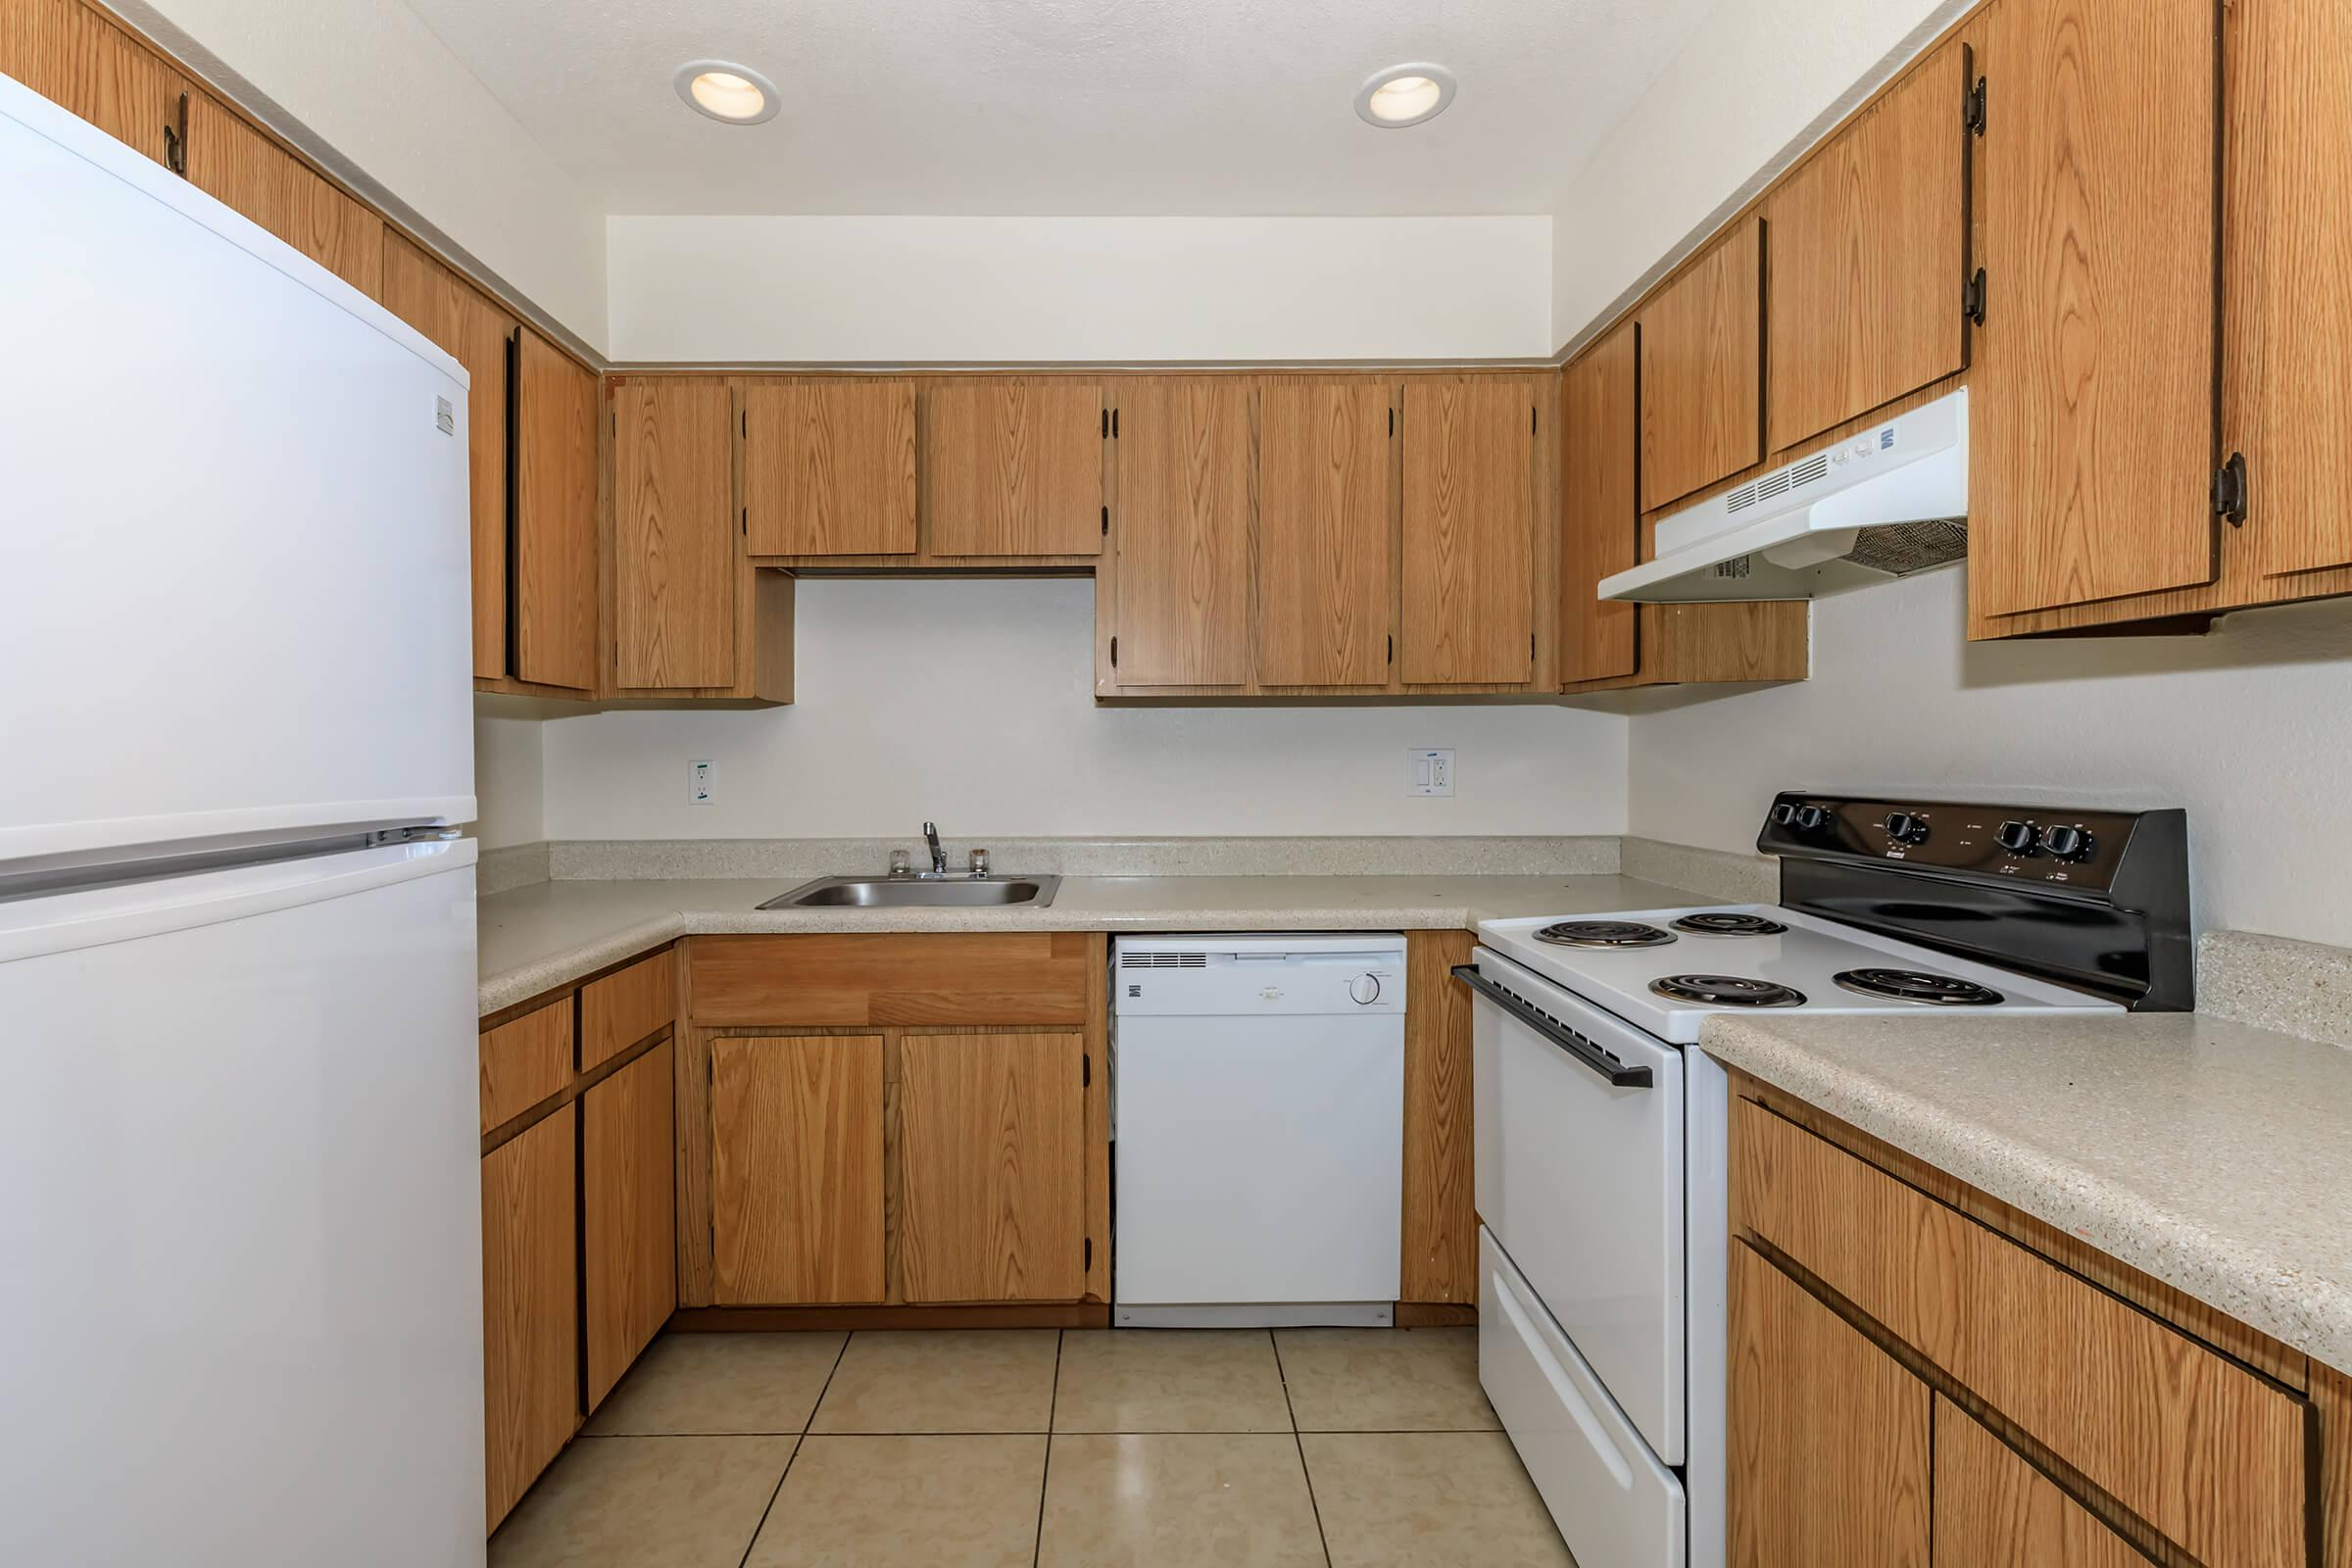 a kitchen with a stove refrigerator and wooden cabinets